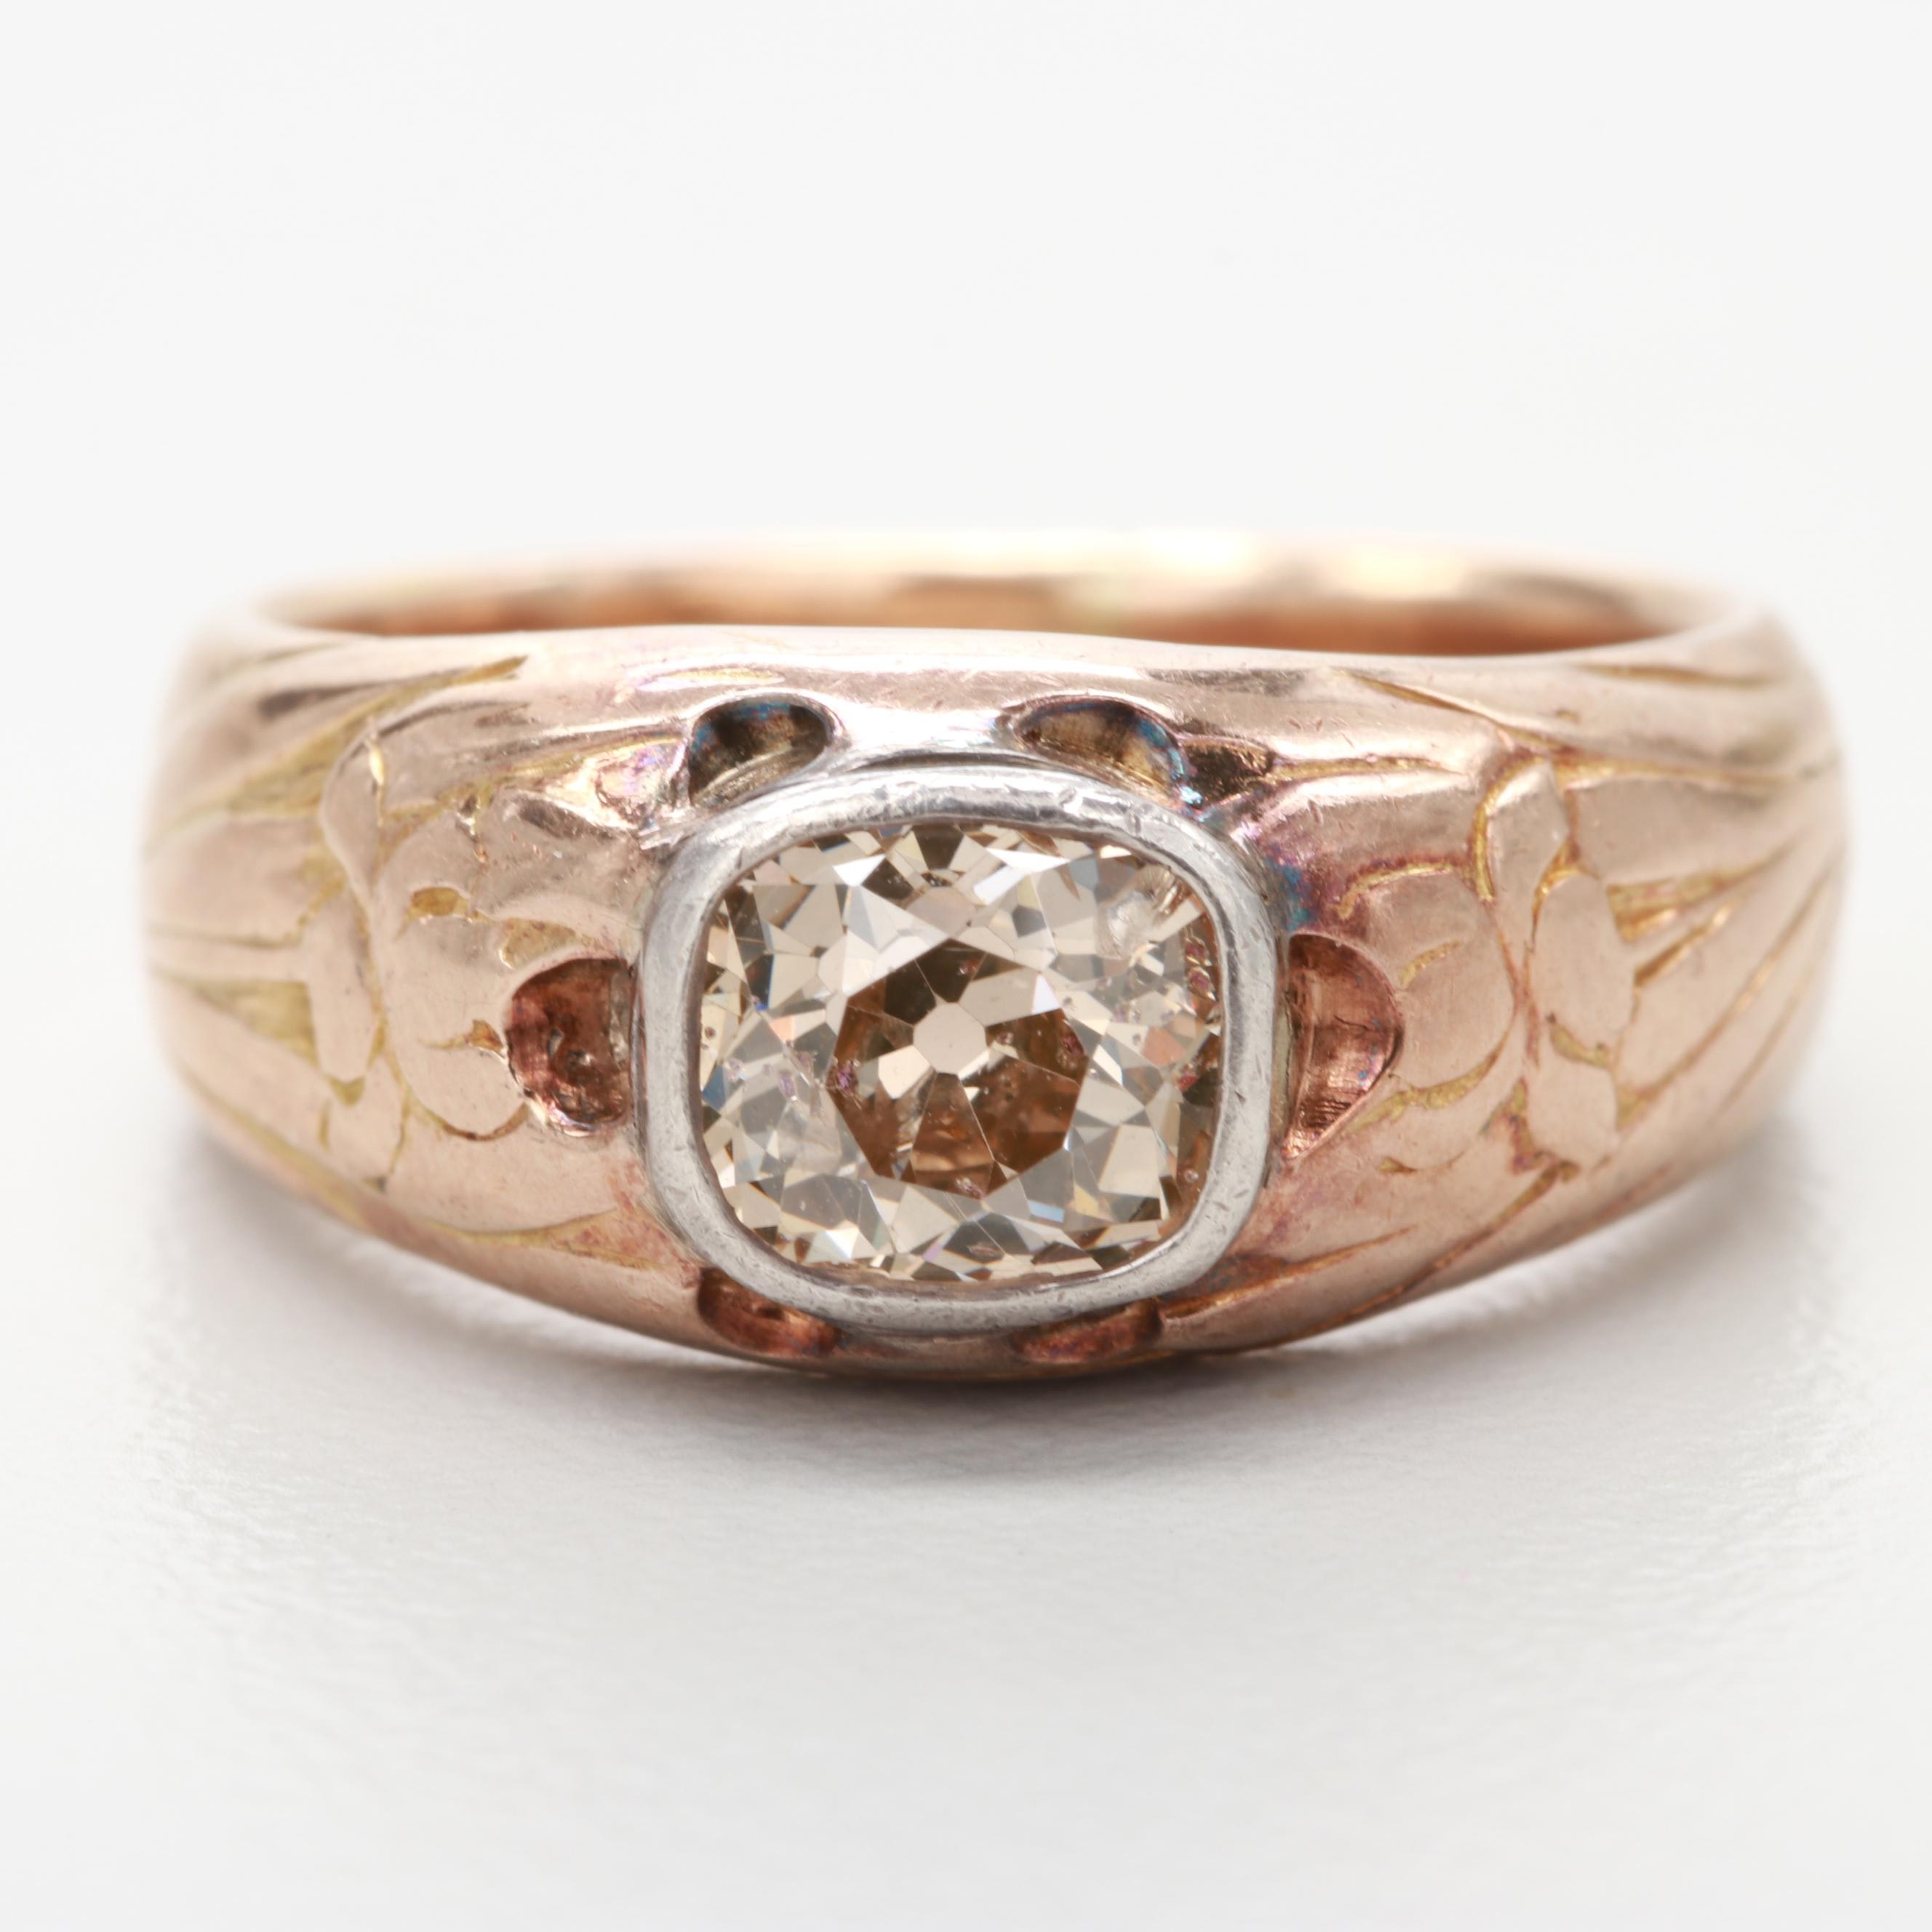 Early 1900s Art Nouveau 14K Rose Gold and Sterling Silver Diamond Ring